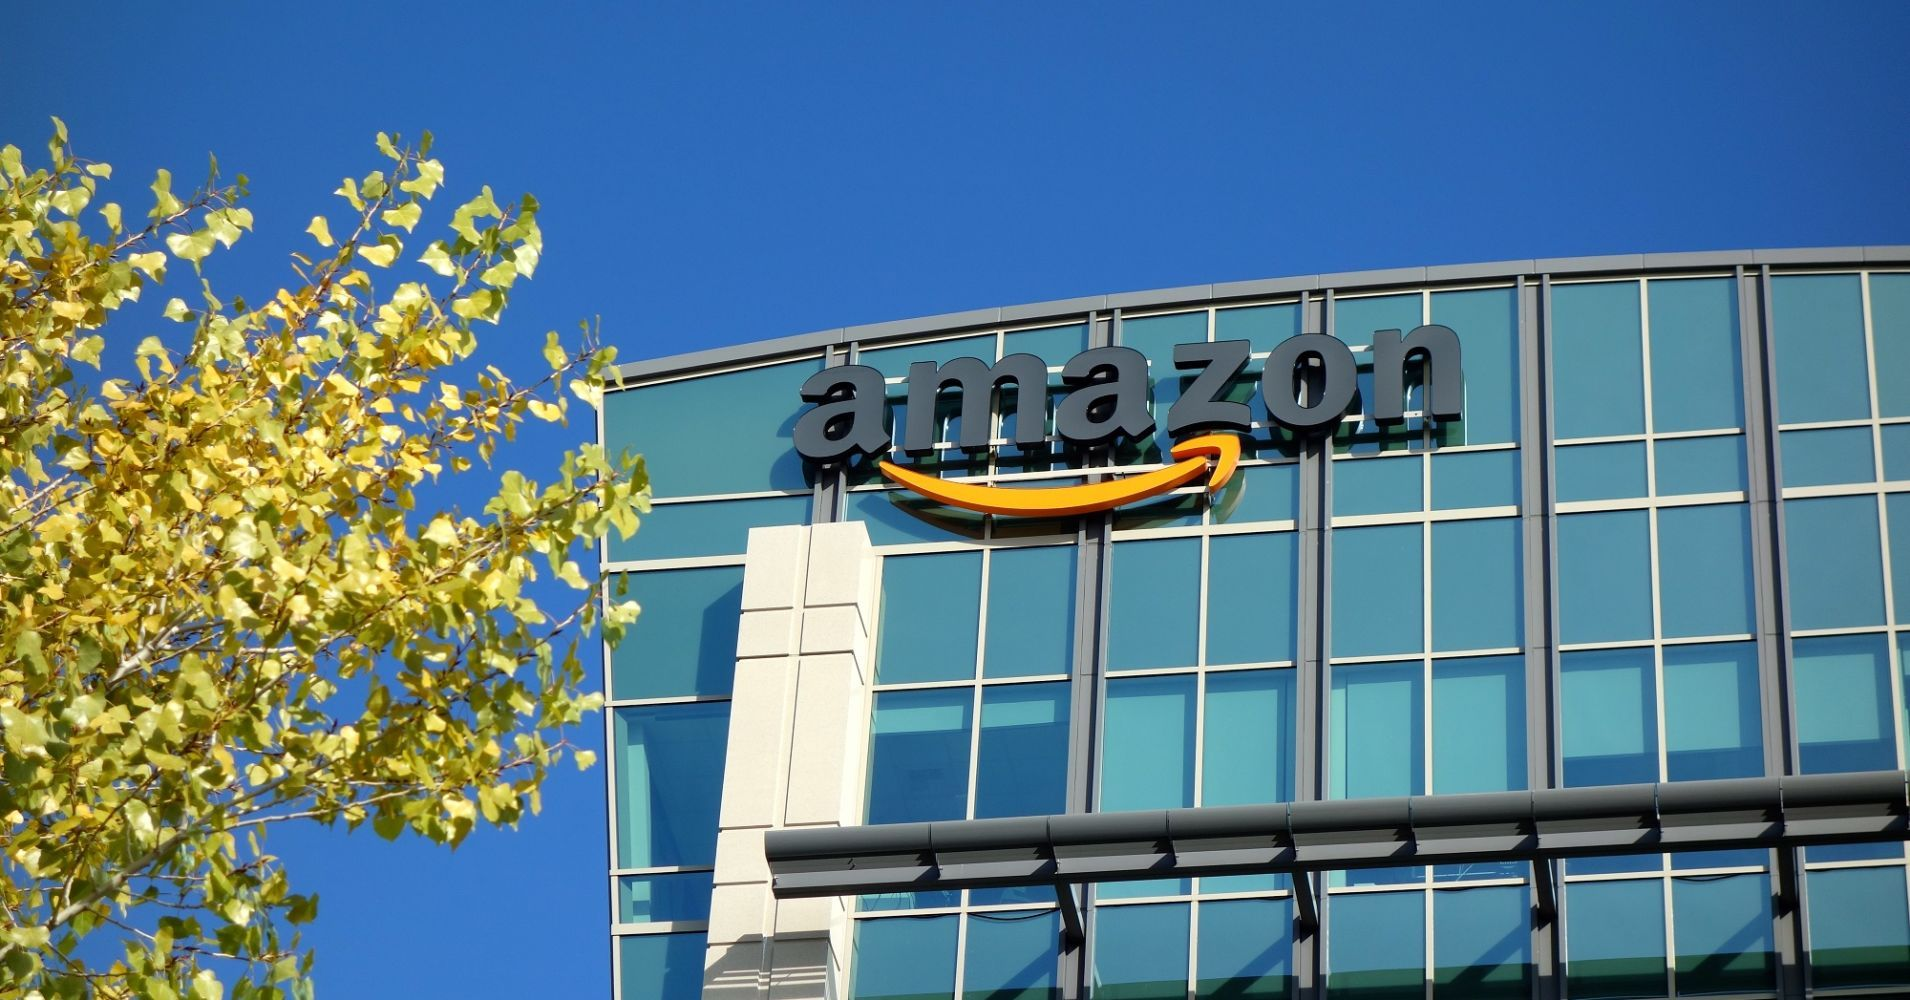 Jeff Bezos: One day, Amazon will go bankrupt